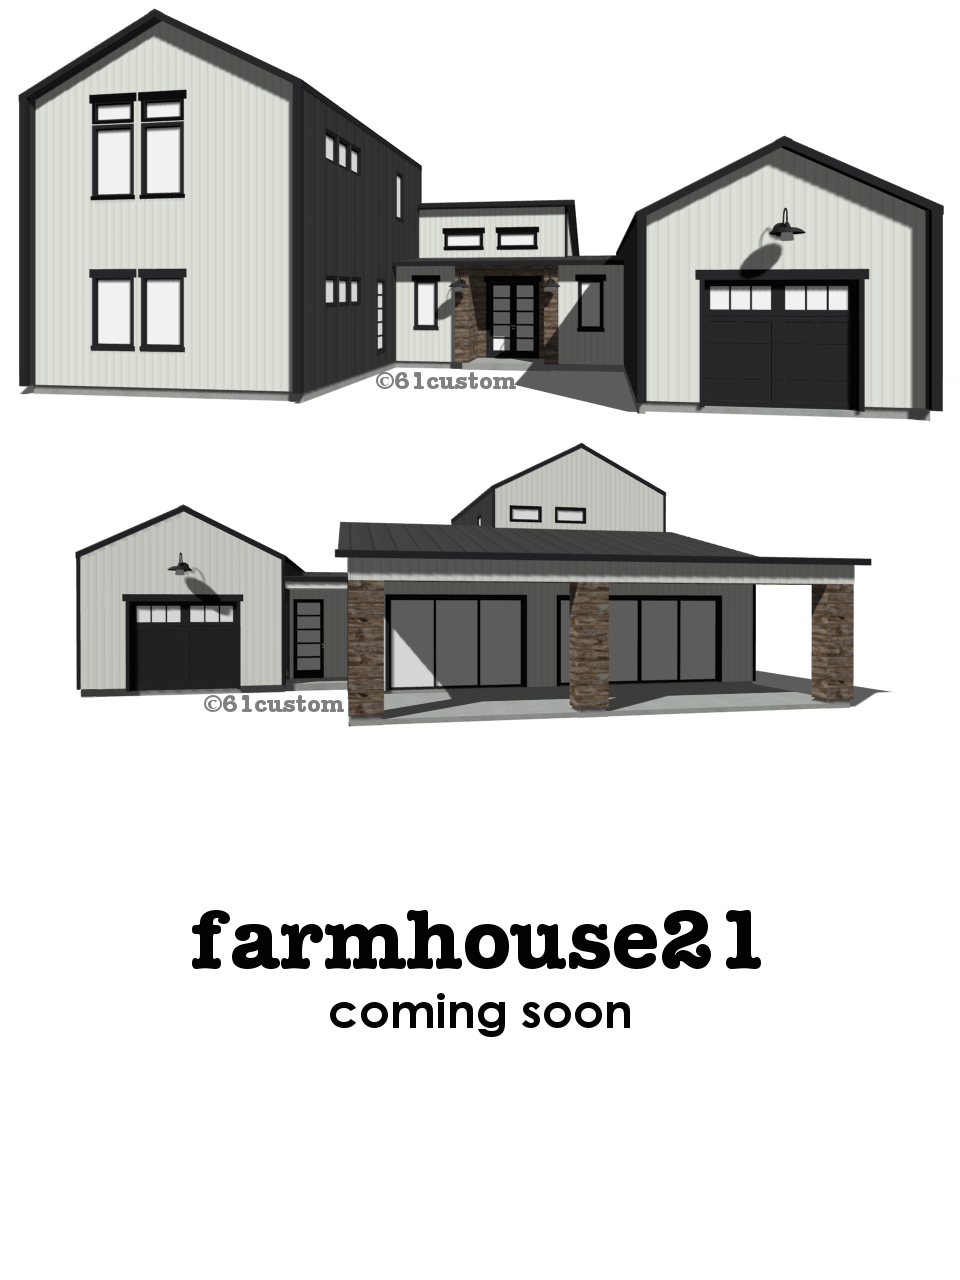 Farmhouse21 modern house plan 61custom contemporary for Contemporary style home plans